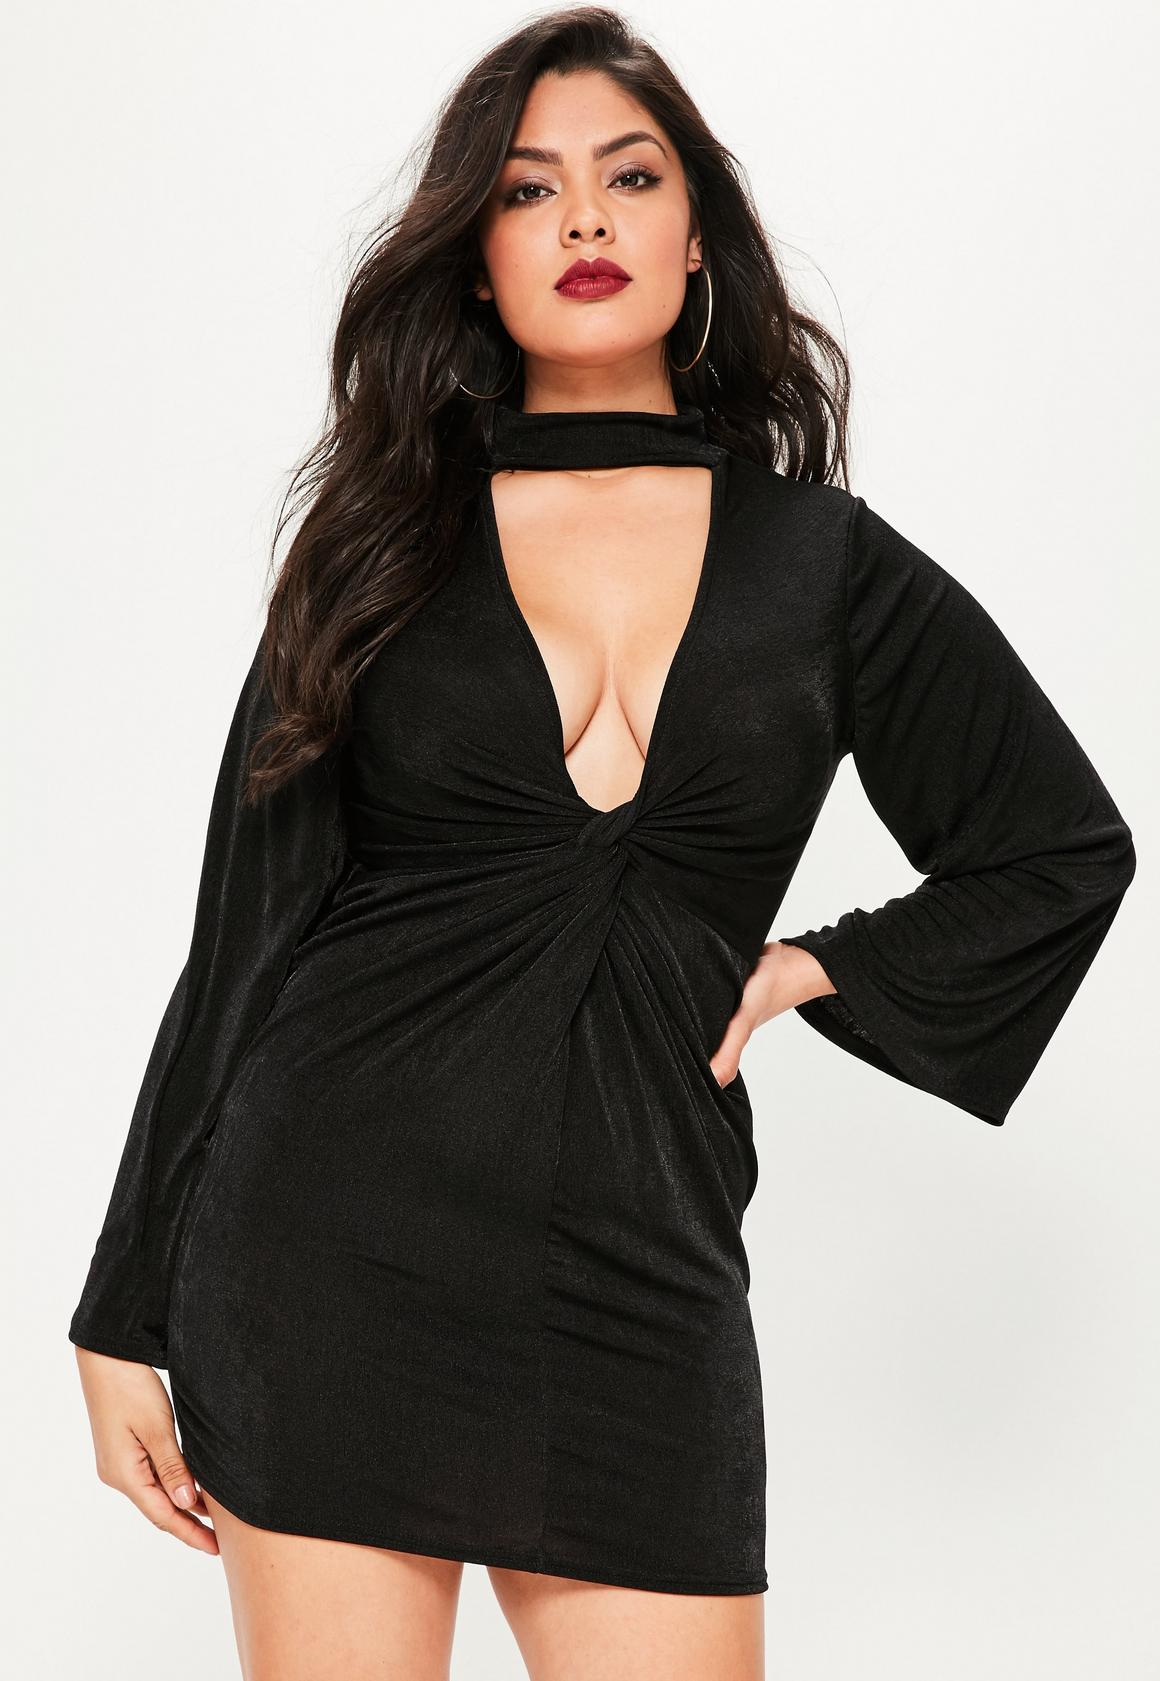 Plus Size Dresses - Formal, Maxi & More | Missguided